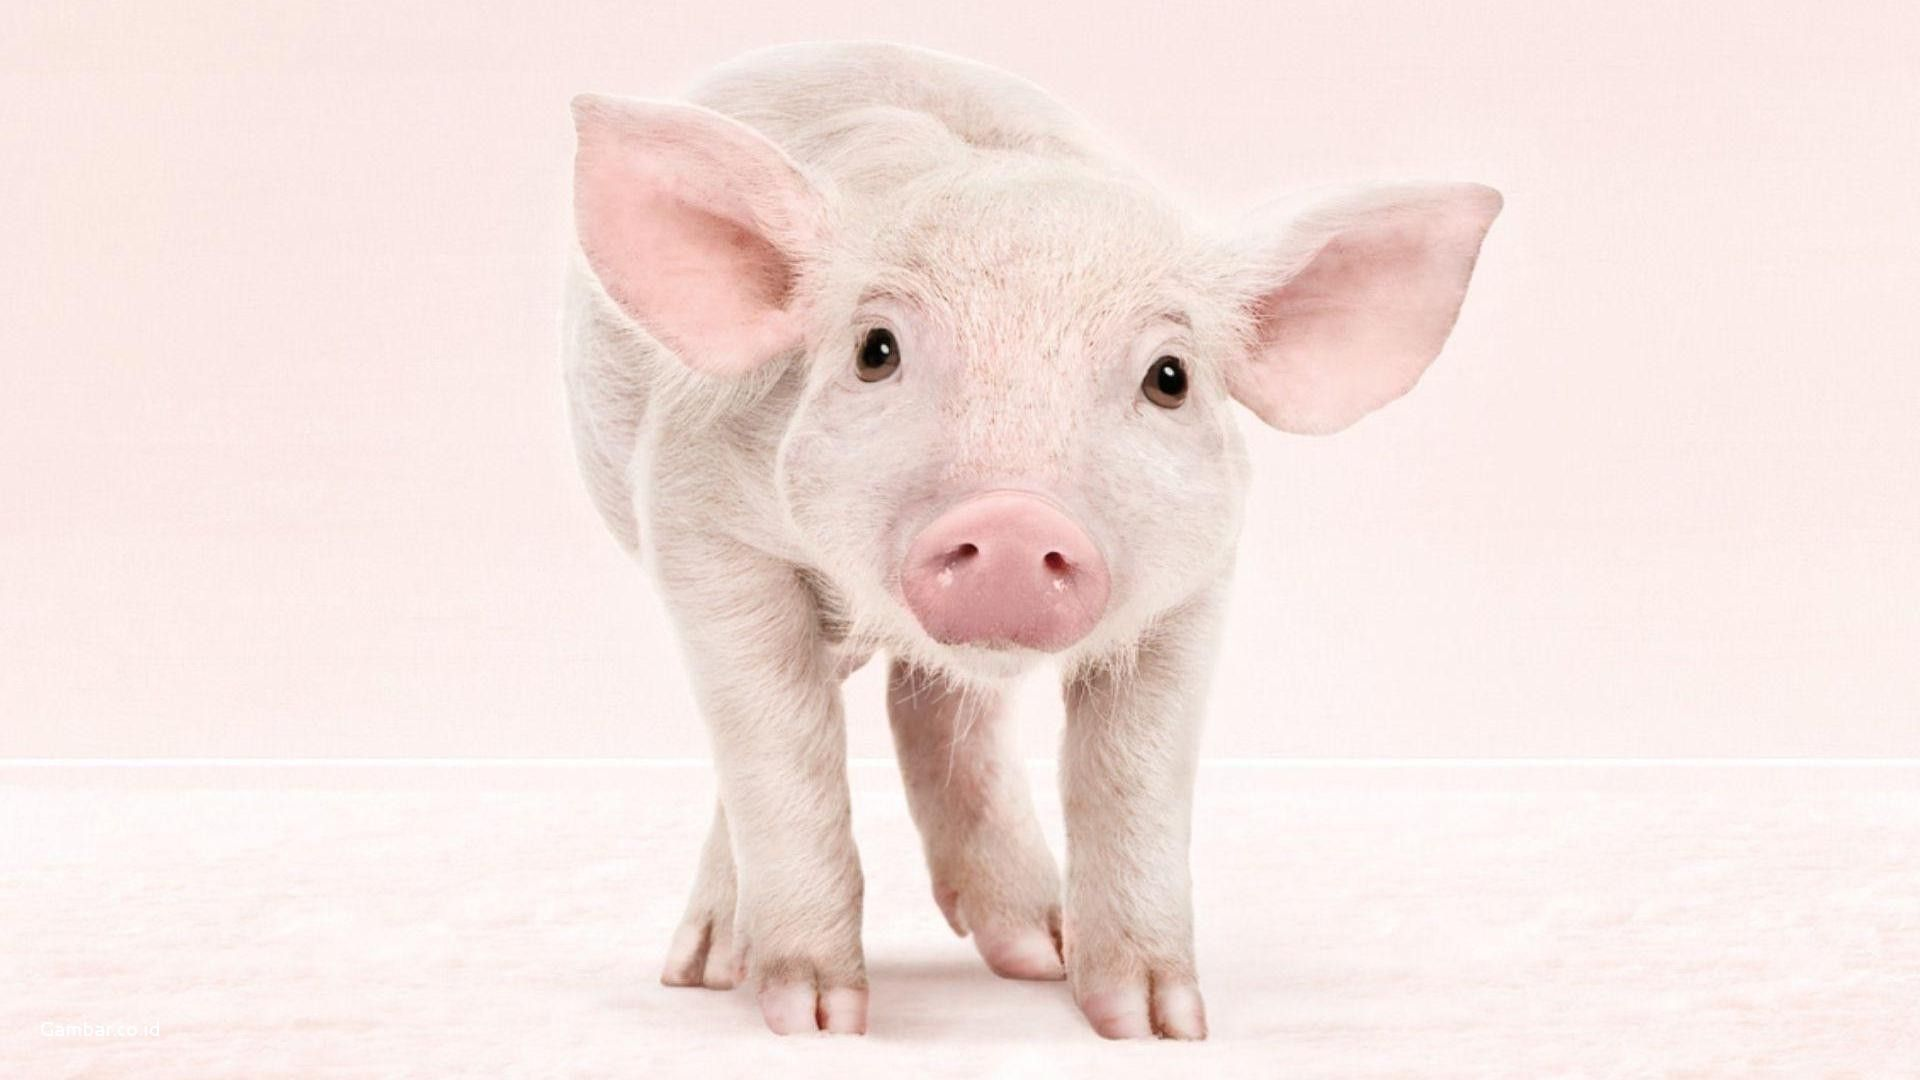 Pigs Pictures